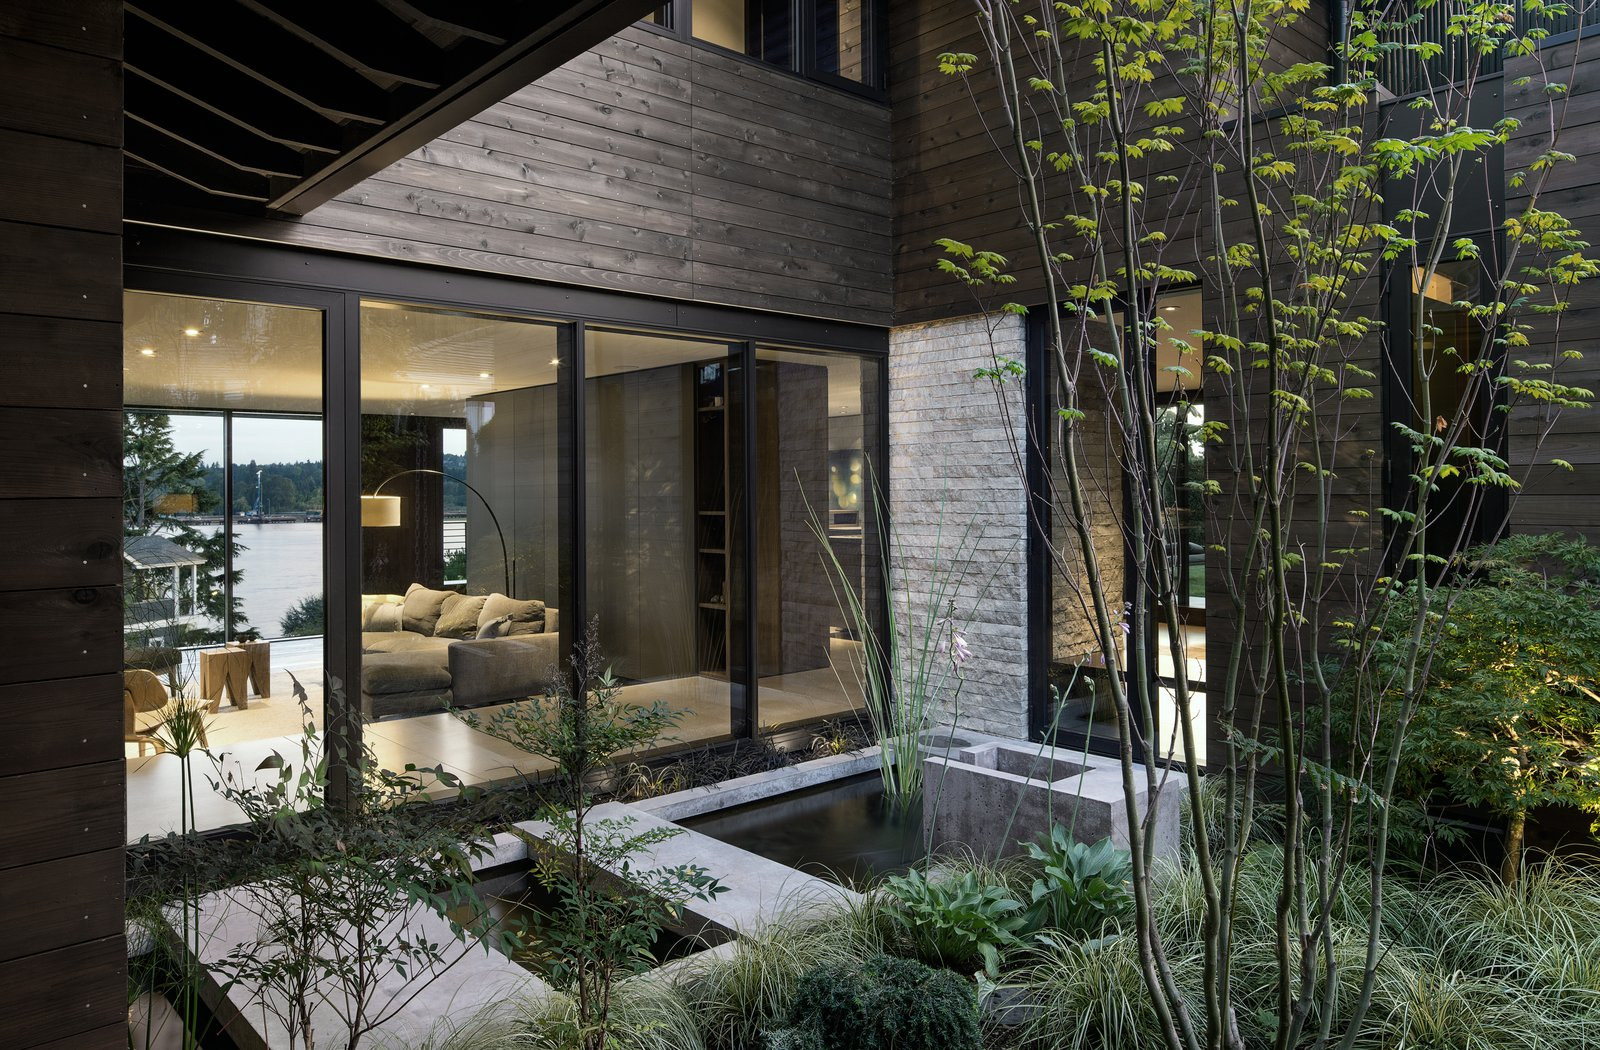 Outdoor, Gardens, and Concrete Pools, Tubs, Shower Laurelhurst Residence  Laurelhurst Residence by mw|works